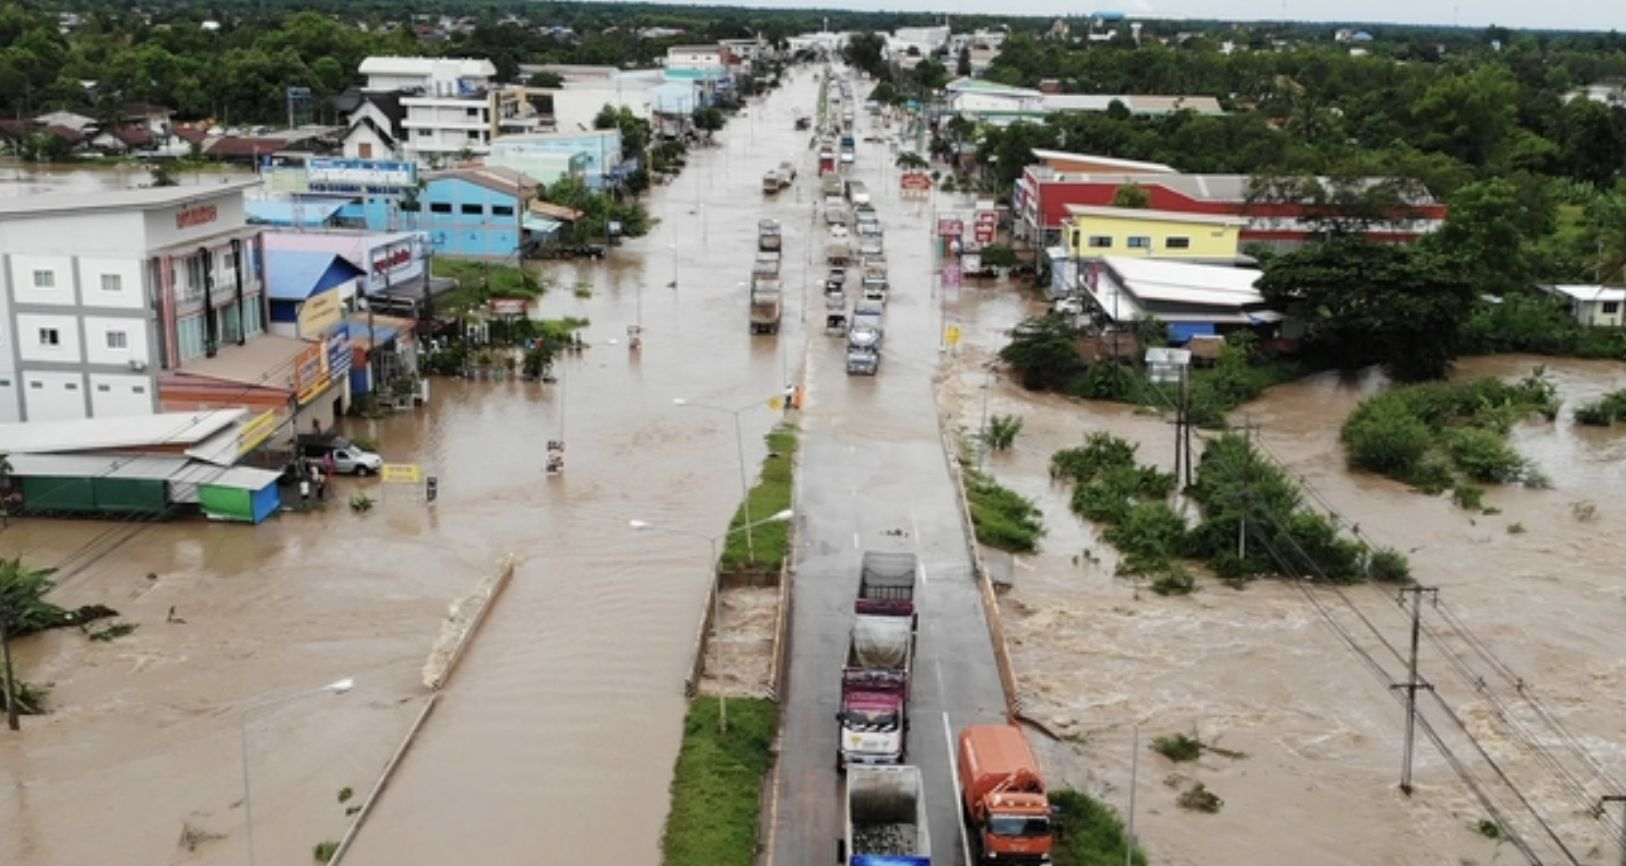 Farmlands flooded in Nong Bua Lam Phu Province as heavy rain persists | News by Thaiger